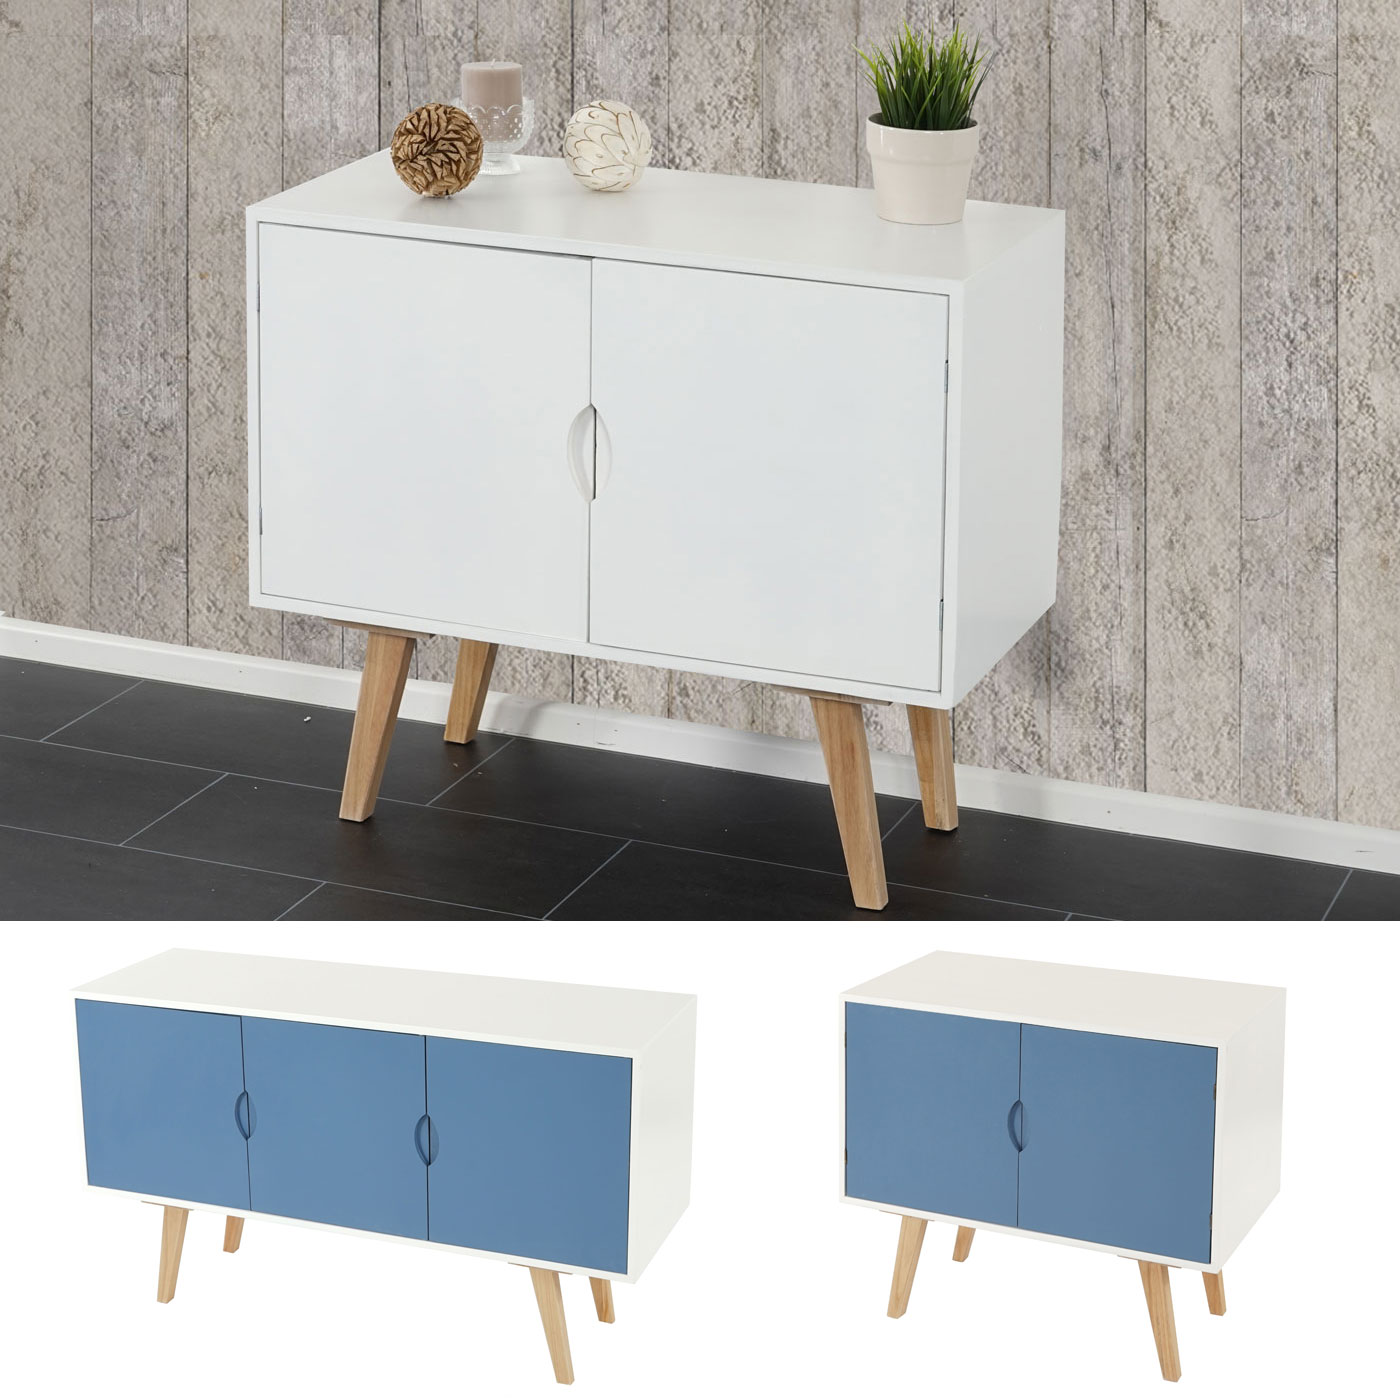 kommode malm t292 schrank sideboard retro design blaue. Black Bedroom Furniture Sets. Home Design Ideas